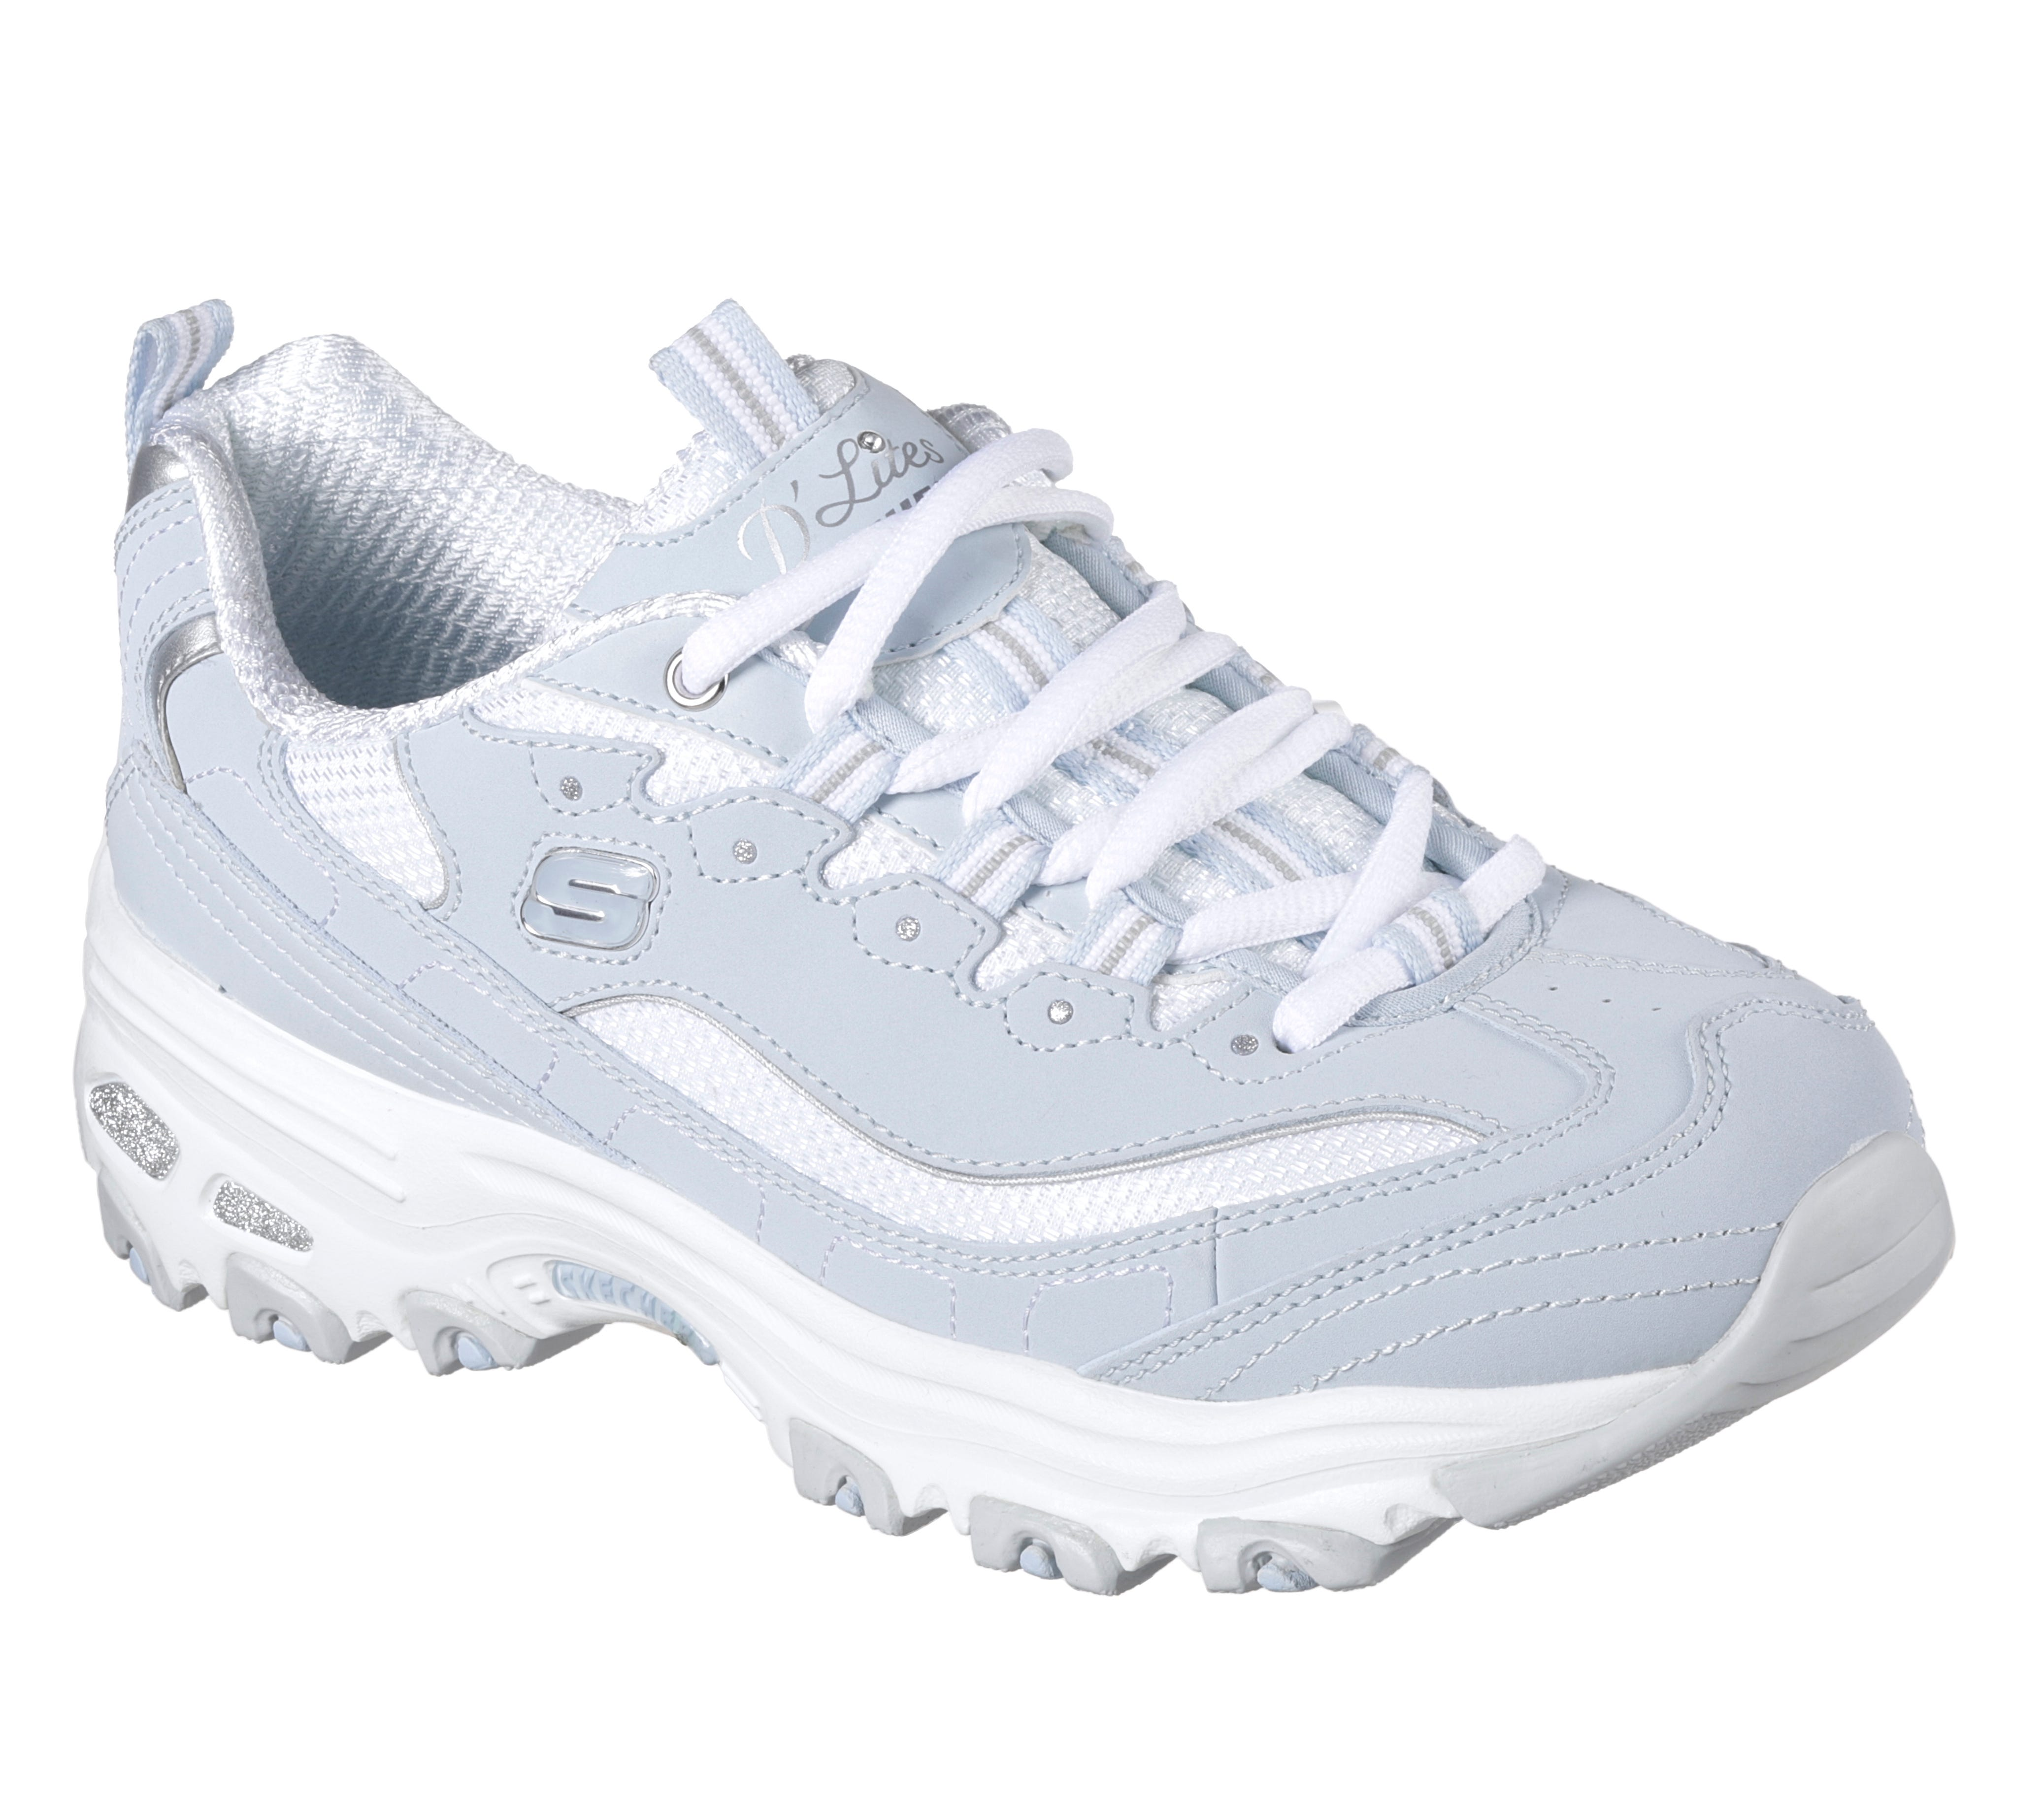 Skechers bringing back iconic style made famous by Britney